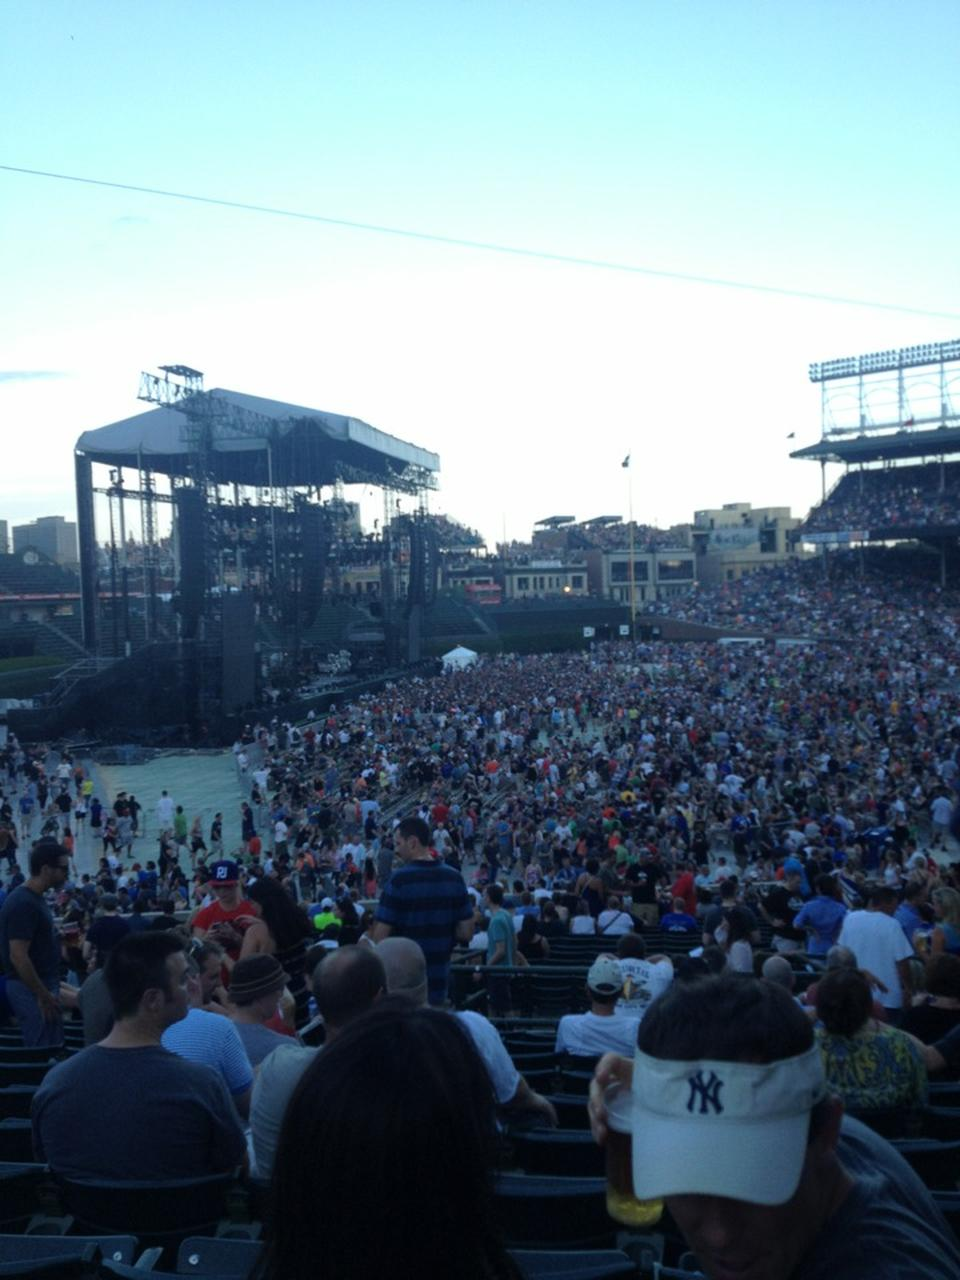 Wrigley Field Section 105 Concert Seating - RateYourSeats.com